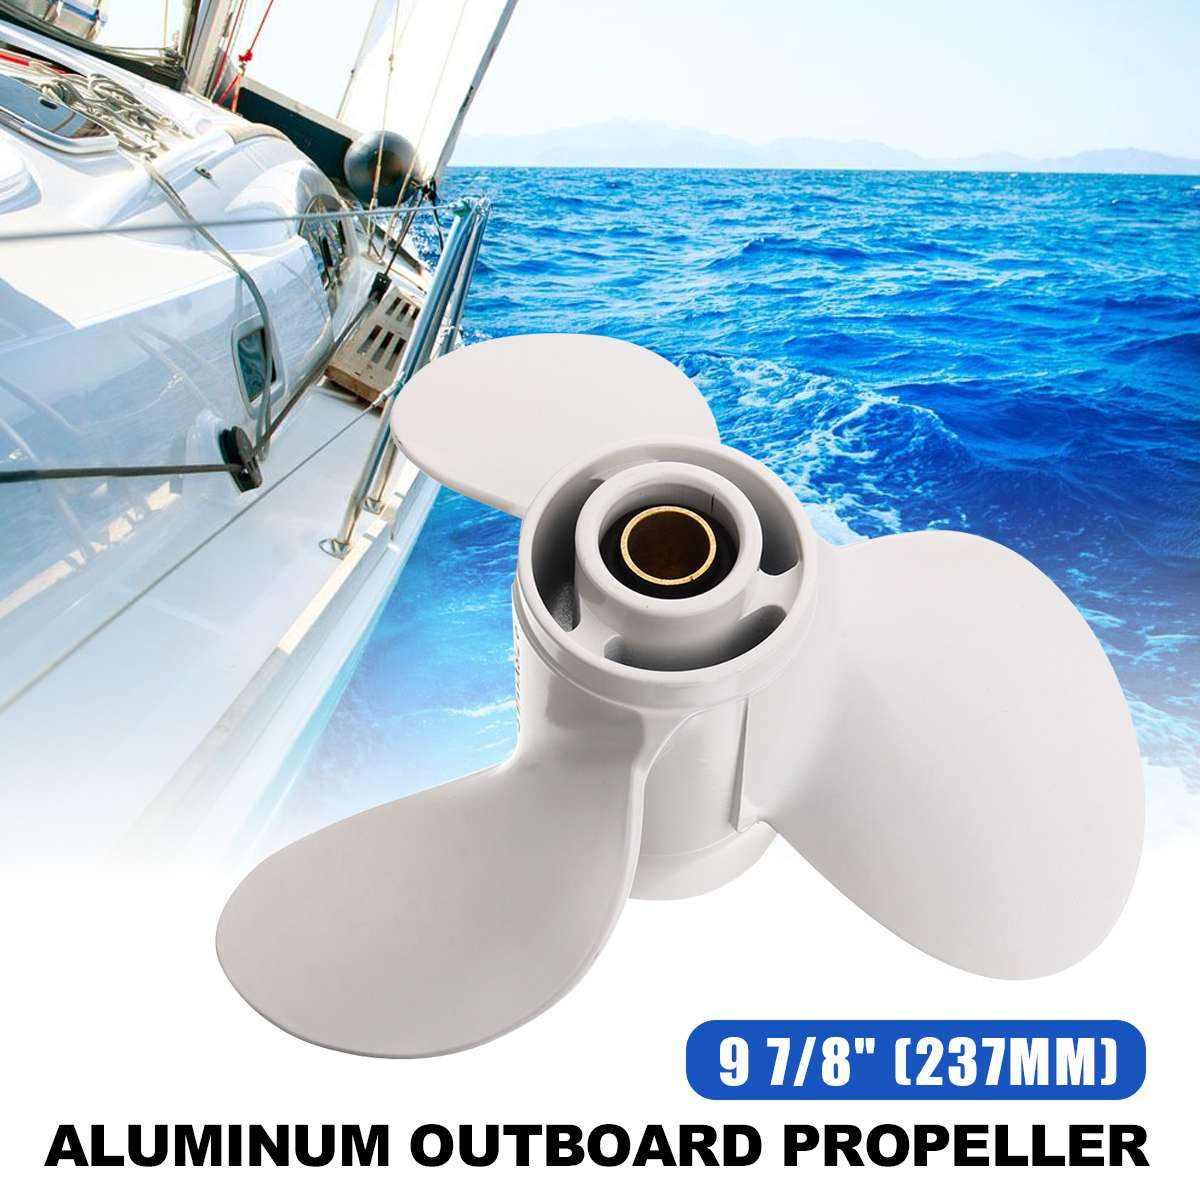 Boat Outboard Propeller 664-45947-01-EL 9 7/8x11 1/4 Aluminium For Yamaha 20-30HP White R Rotation 3 Blades 10 Spline Tooth